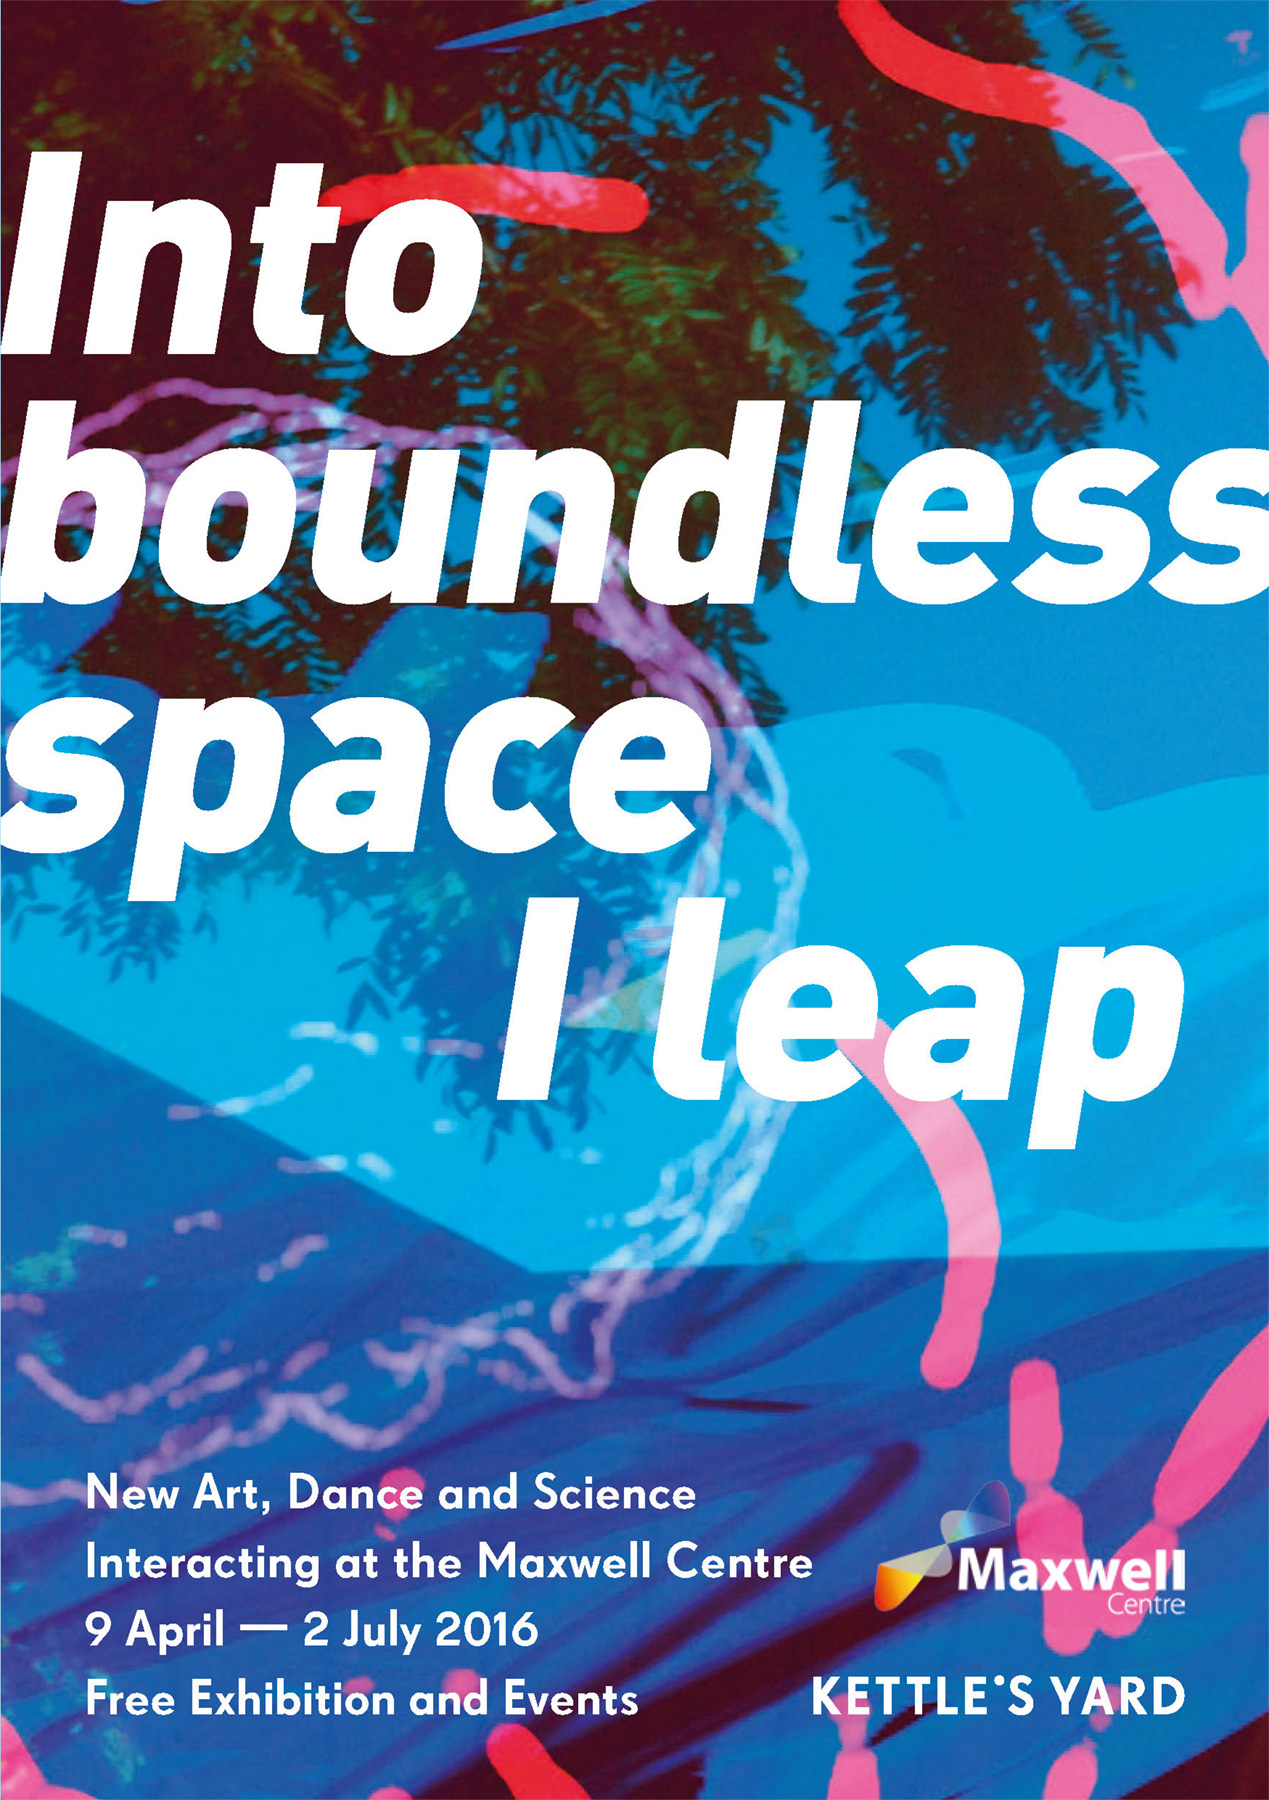 Into Boundless Space I Leap